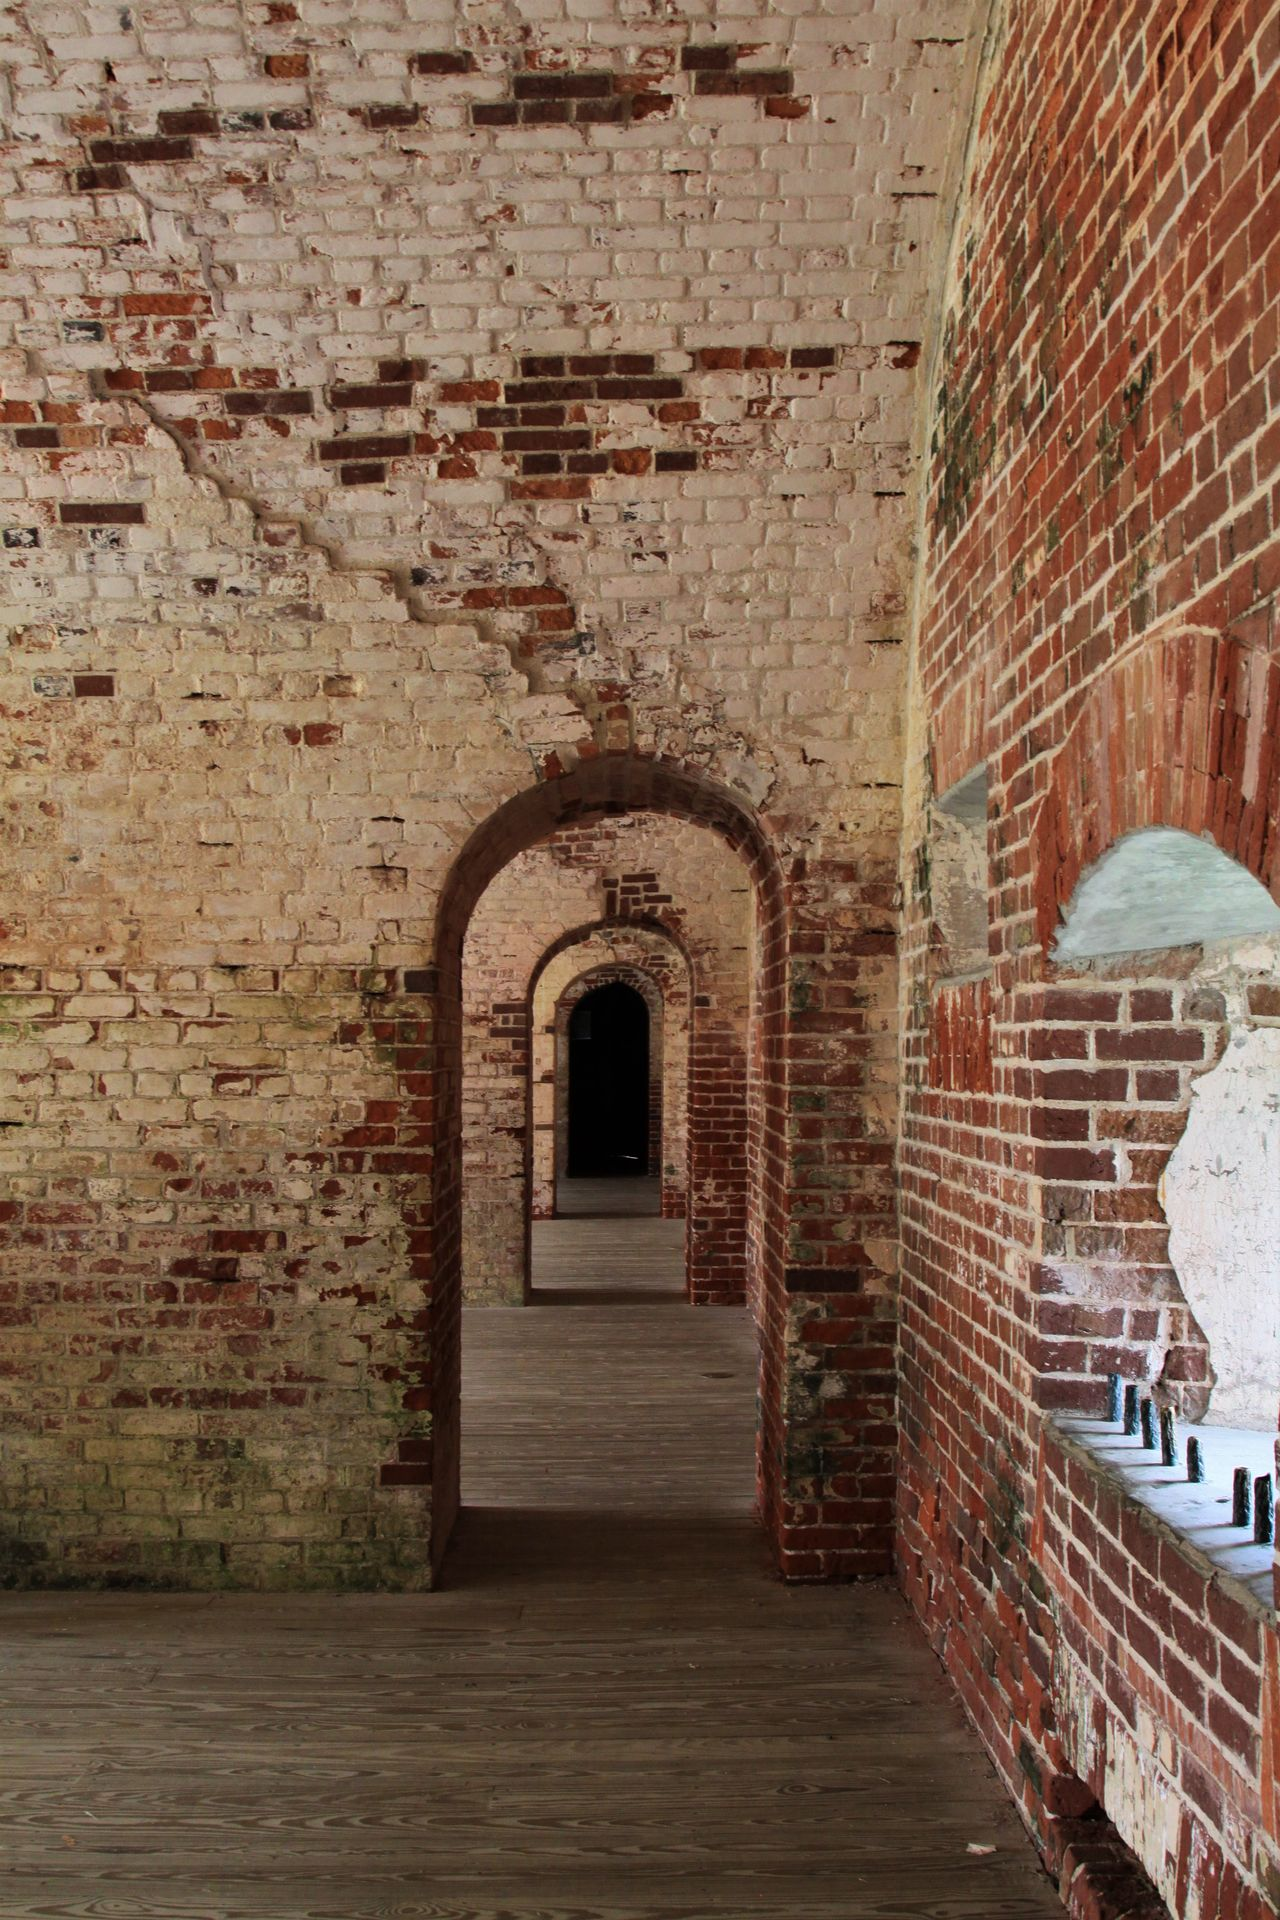 Arch Architectural Detail Architecture Brick Wall Bricks Built Structure Canon Canonphotography Day Doorway EyeEmNewHere Fort Macon  Fortress Indoors  New Talents No People The Way Forward Vintage Window